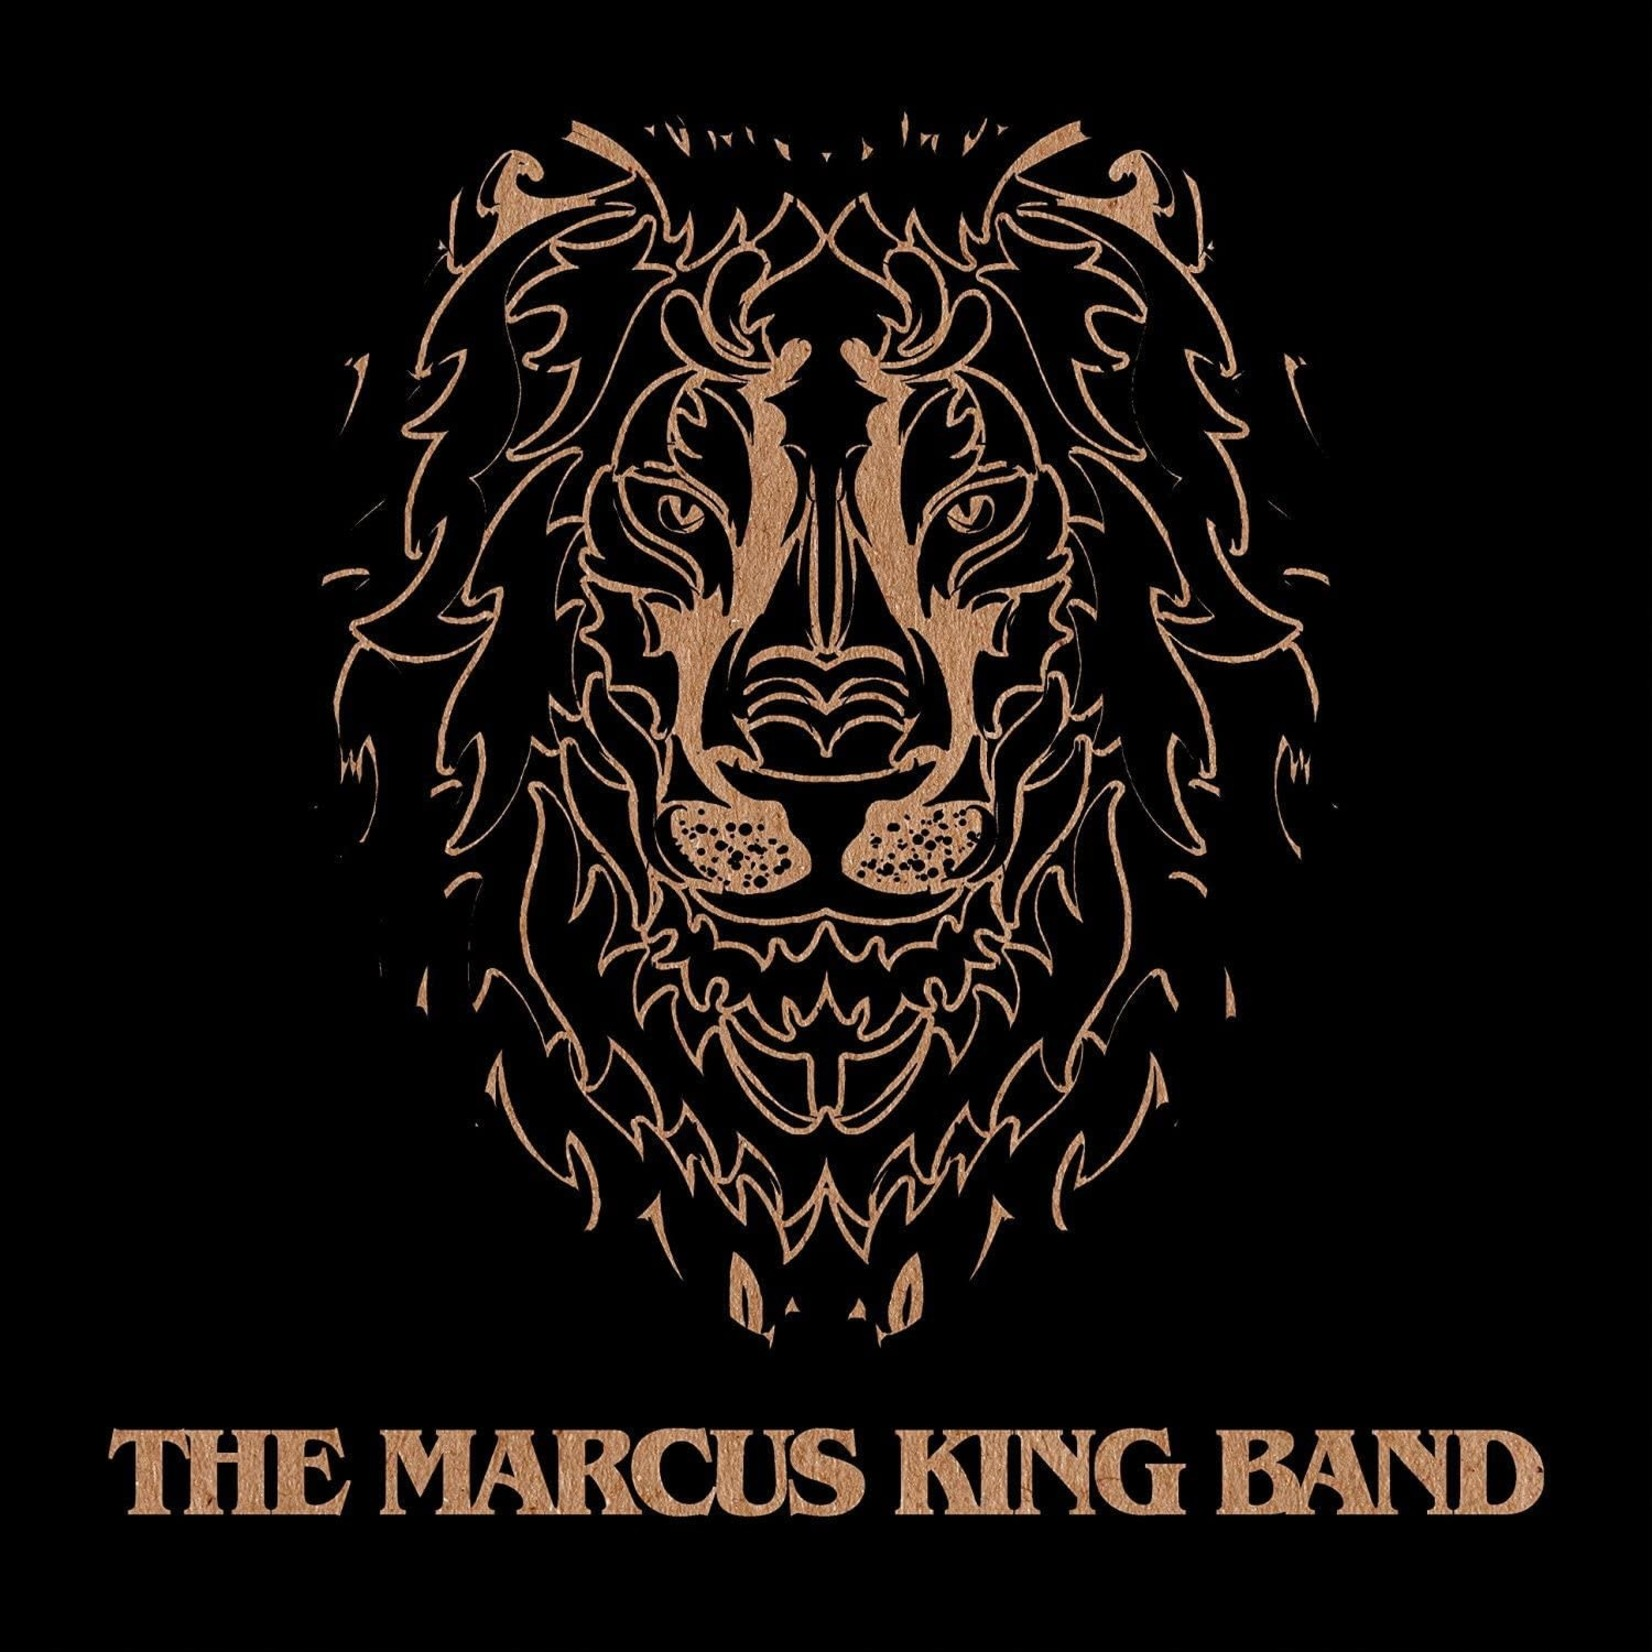 [New] Marcus King Band: self-titled (2LP)